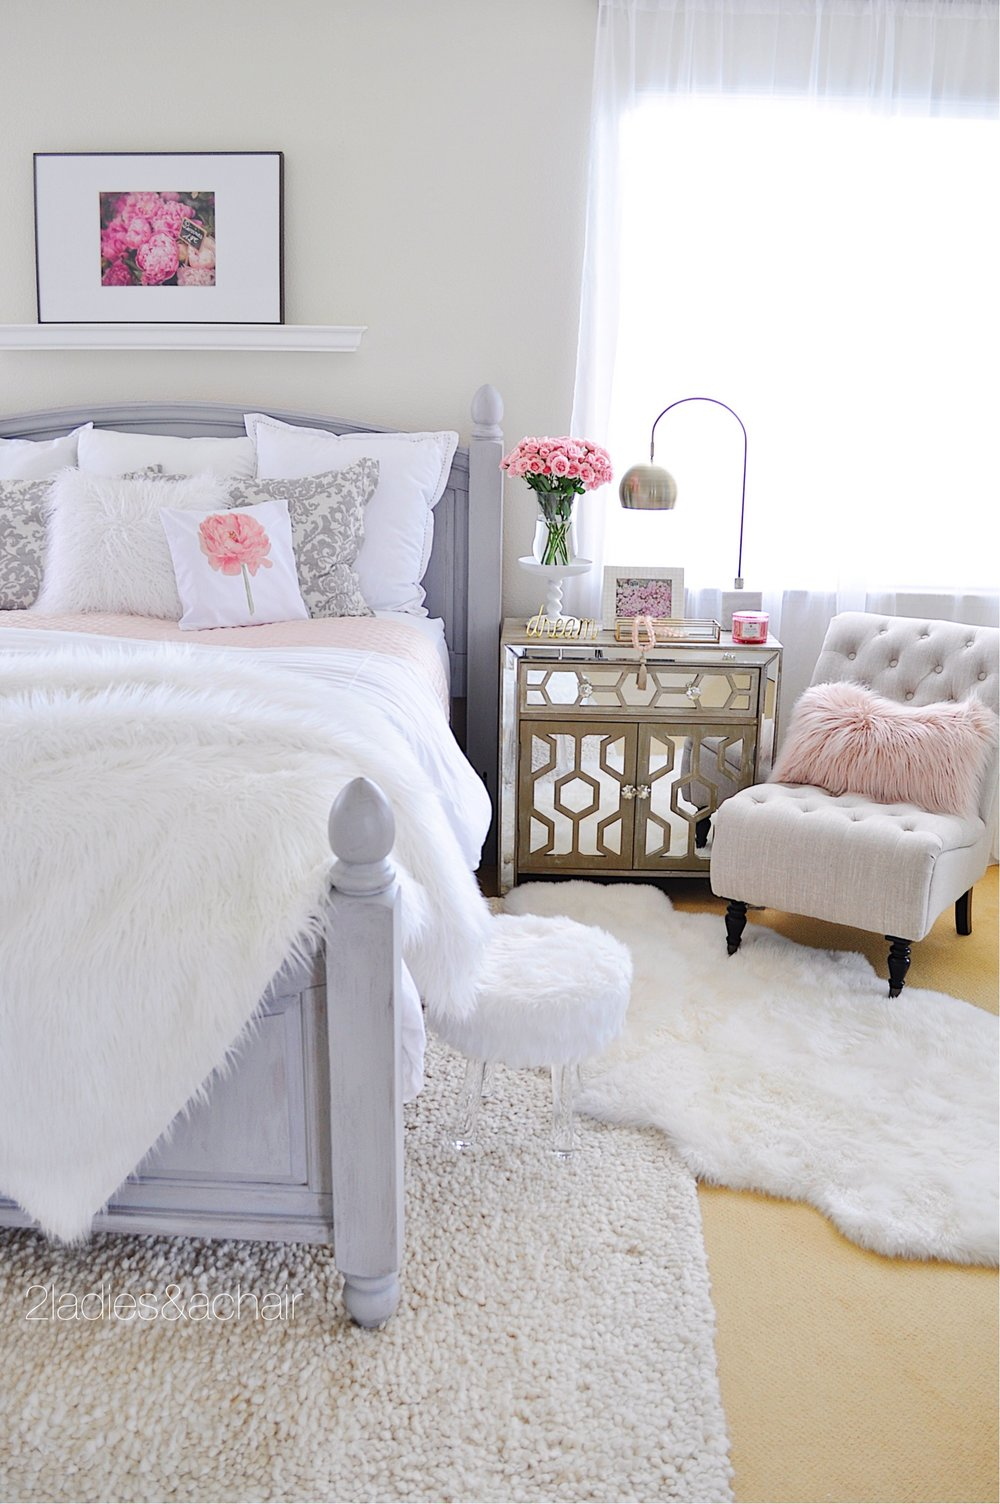 Bedroom Decorating Ideas: Before and After — 2 Ladies & A Chair